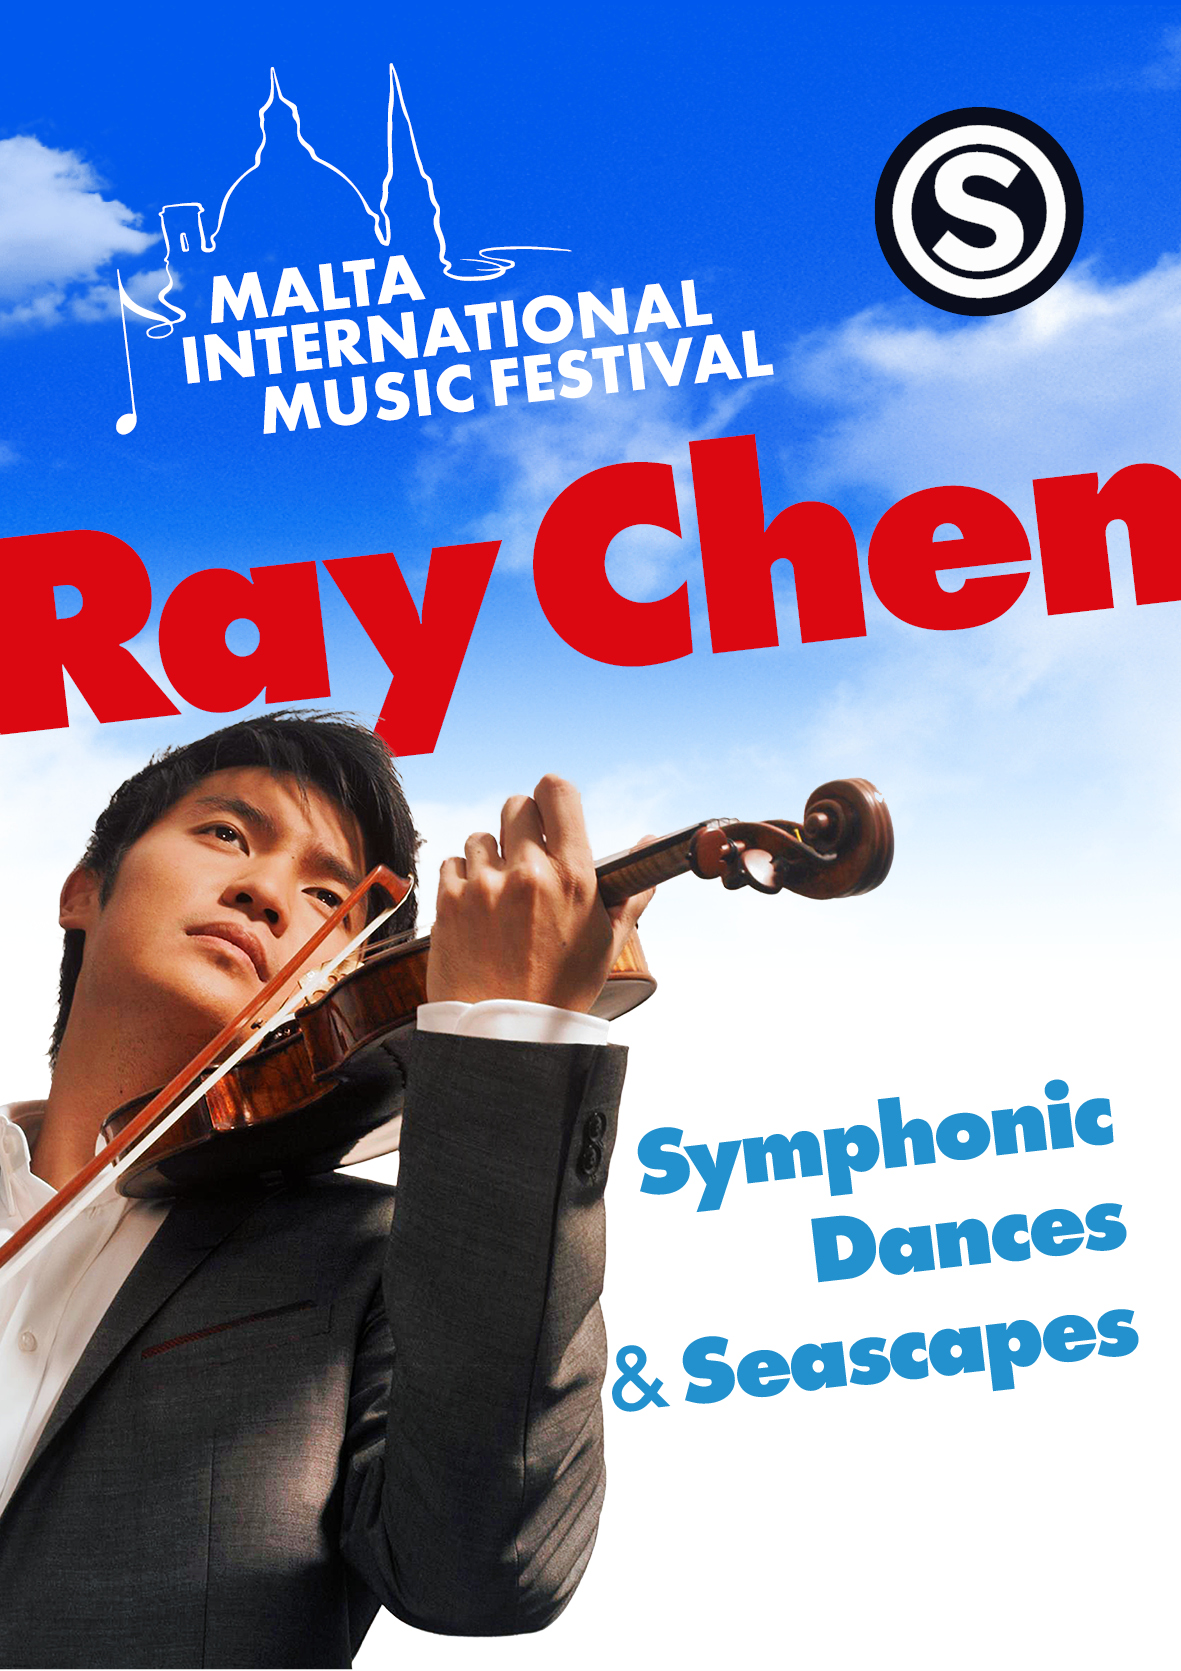 SYMPHONIC DANCES AND SEASCAPES- Ray Chen flyer